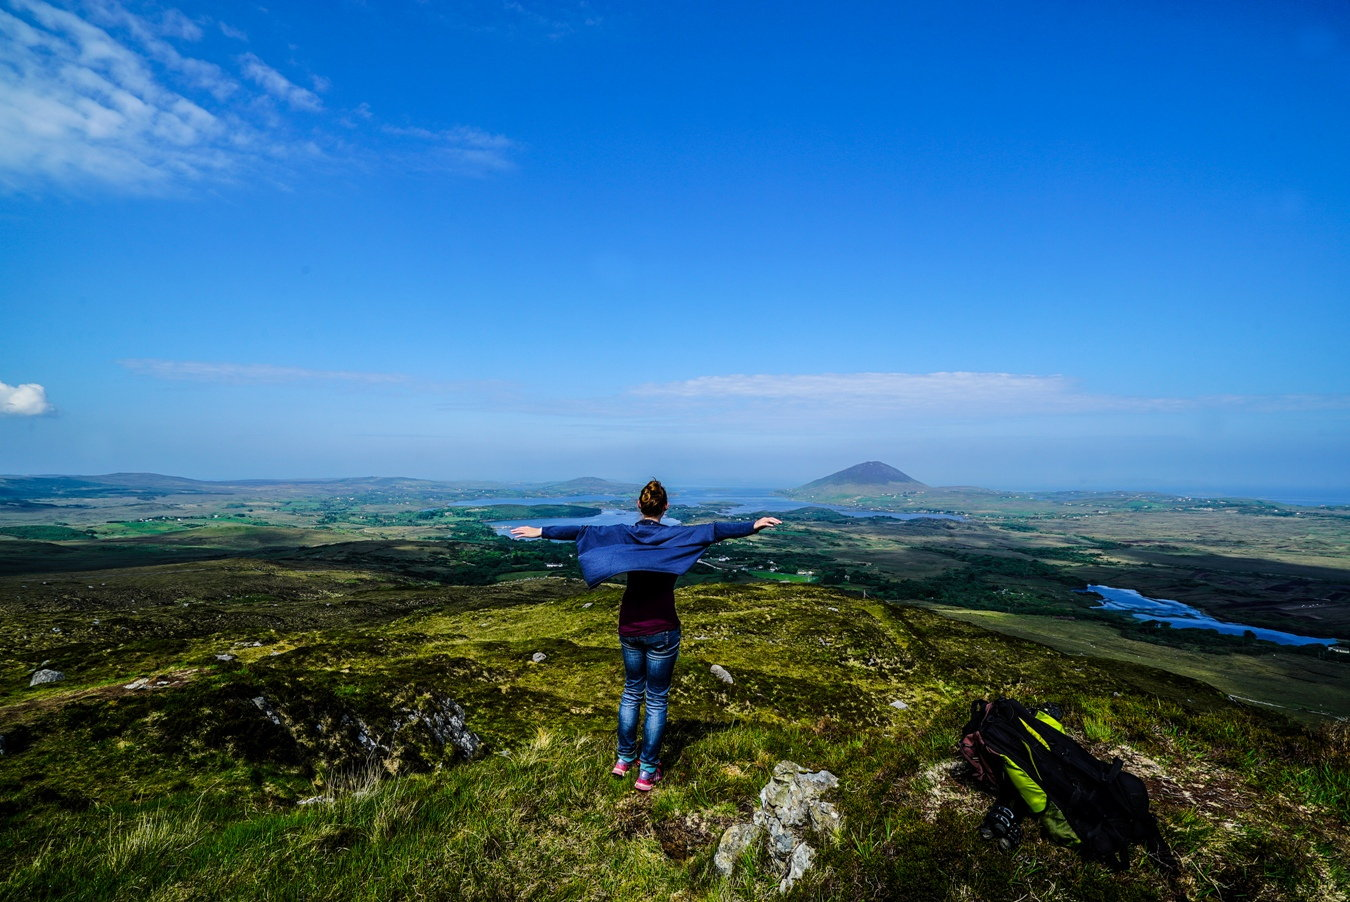 Die Seenlandschaft des Connemara Nationalparks.